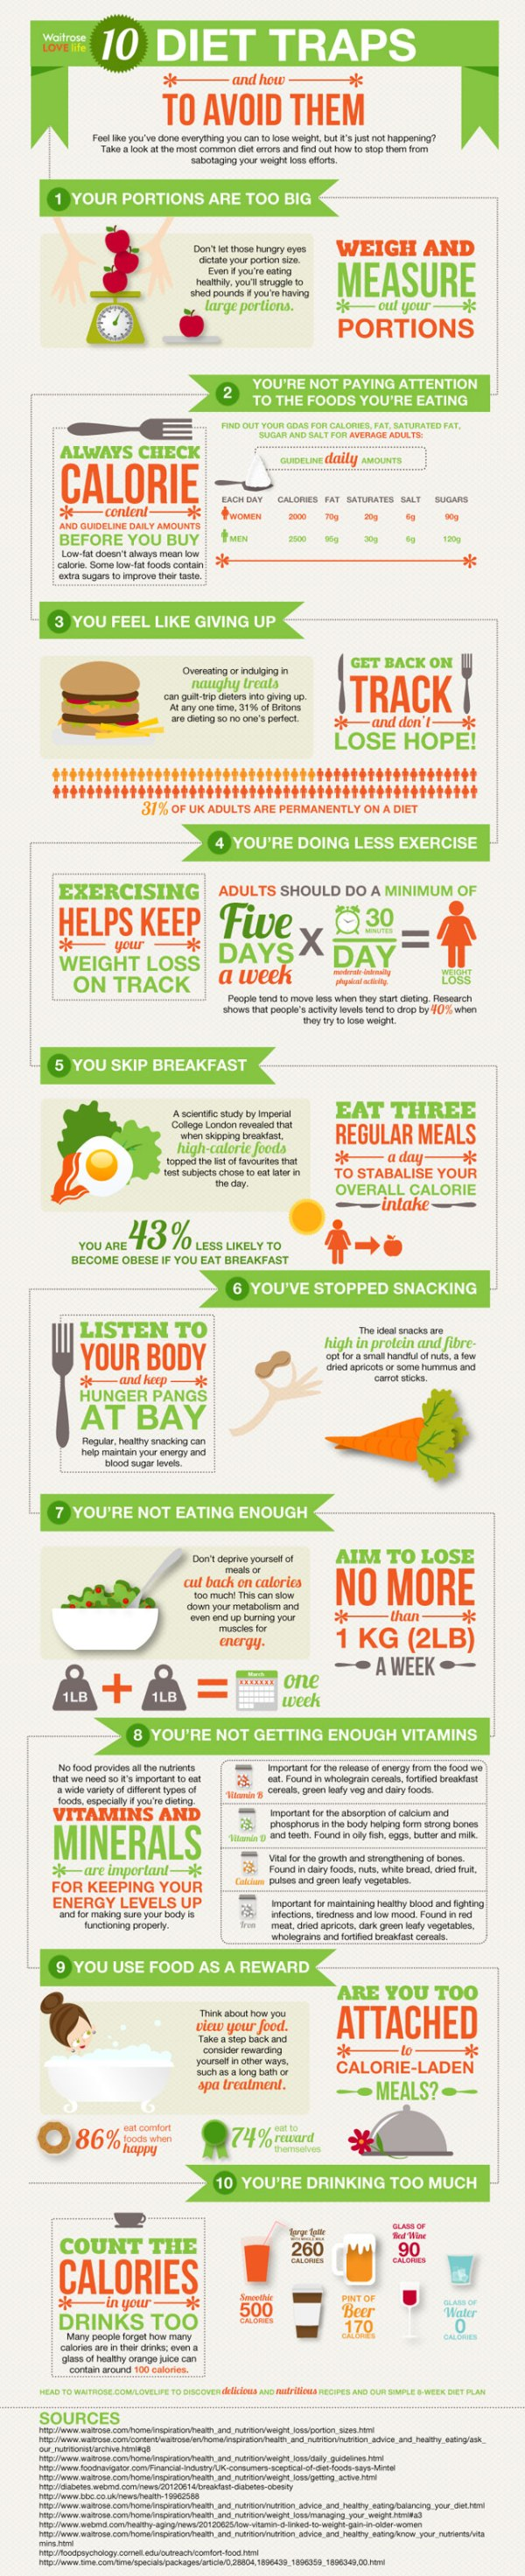 10 common diet traps and how to avoid them